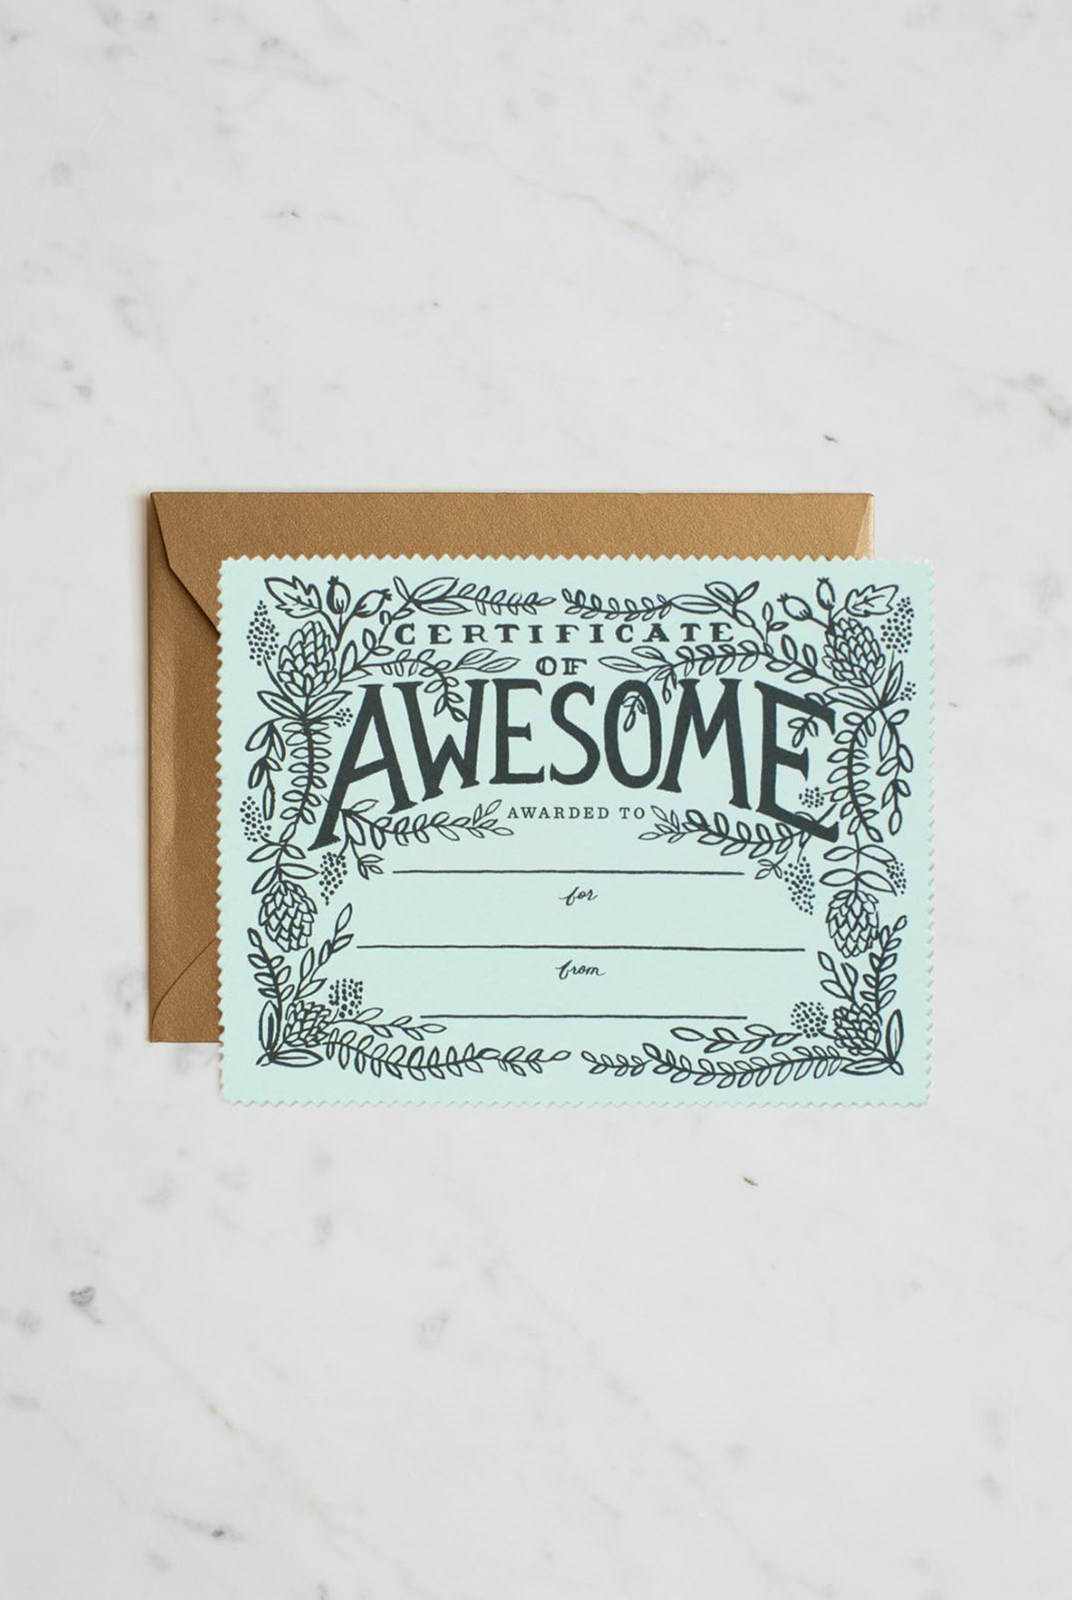 Rifle Paper Co - Certificate of Awesome (die-cut)